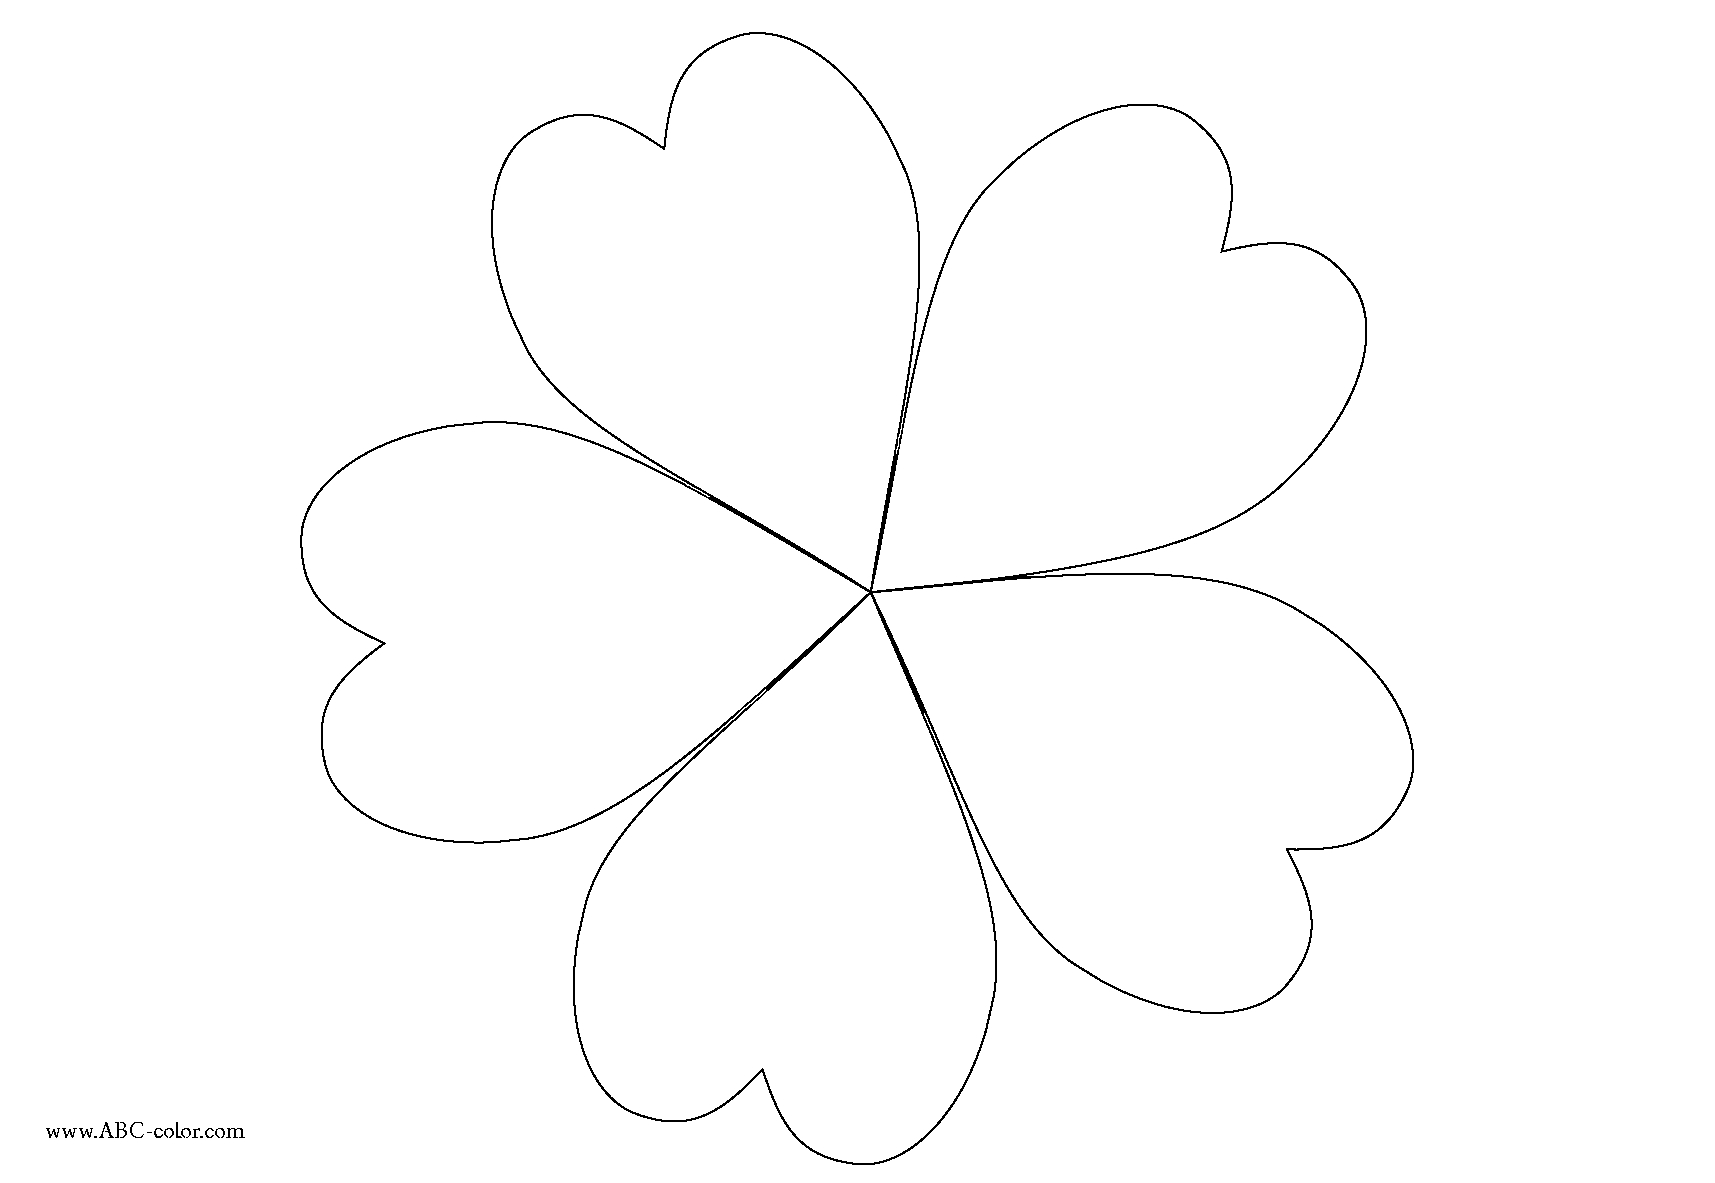 Rose Petals Drawing at GetDrawings.com | Free for personal use Rose Petals Drawing of your choice